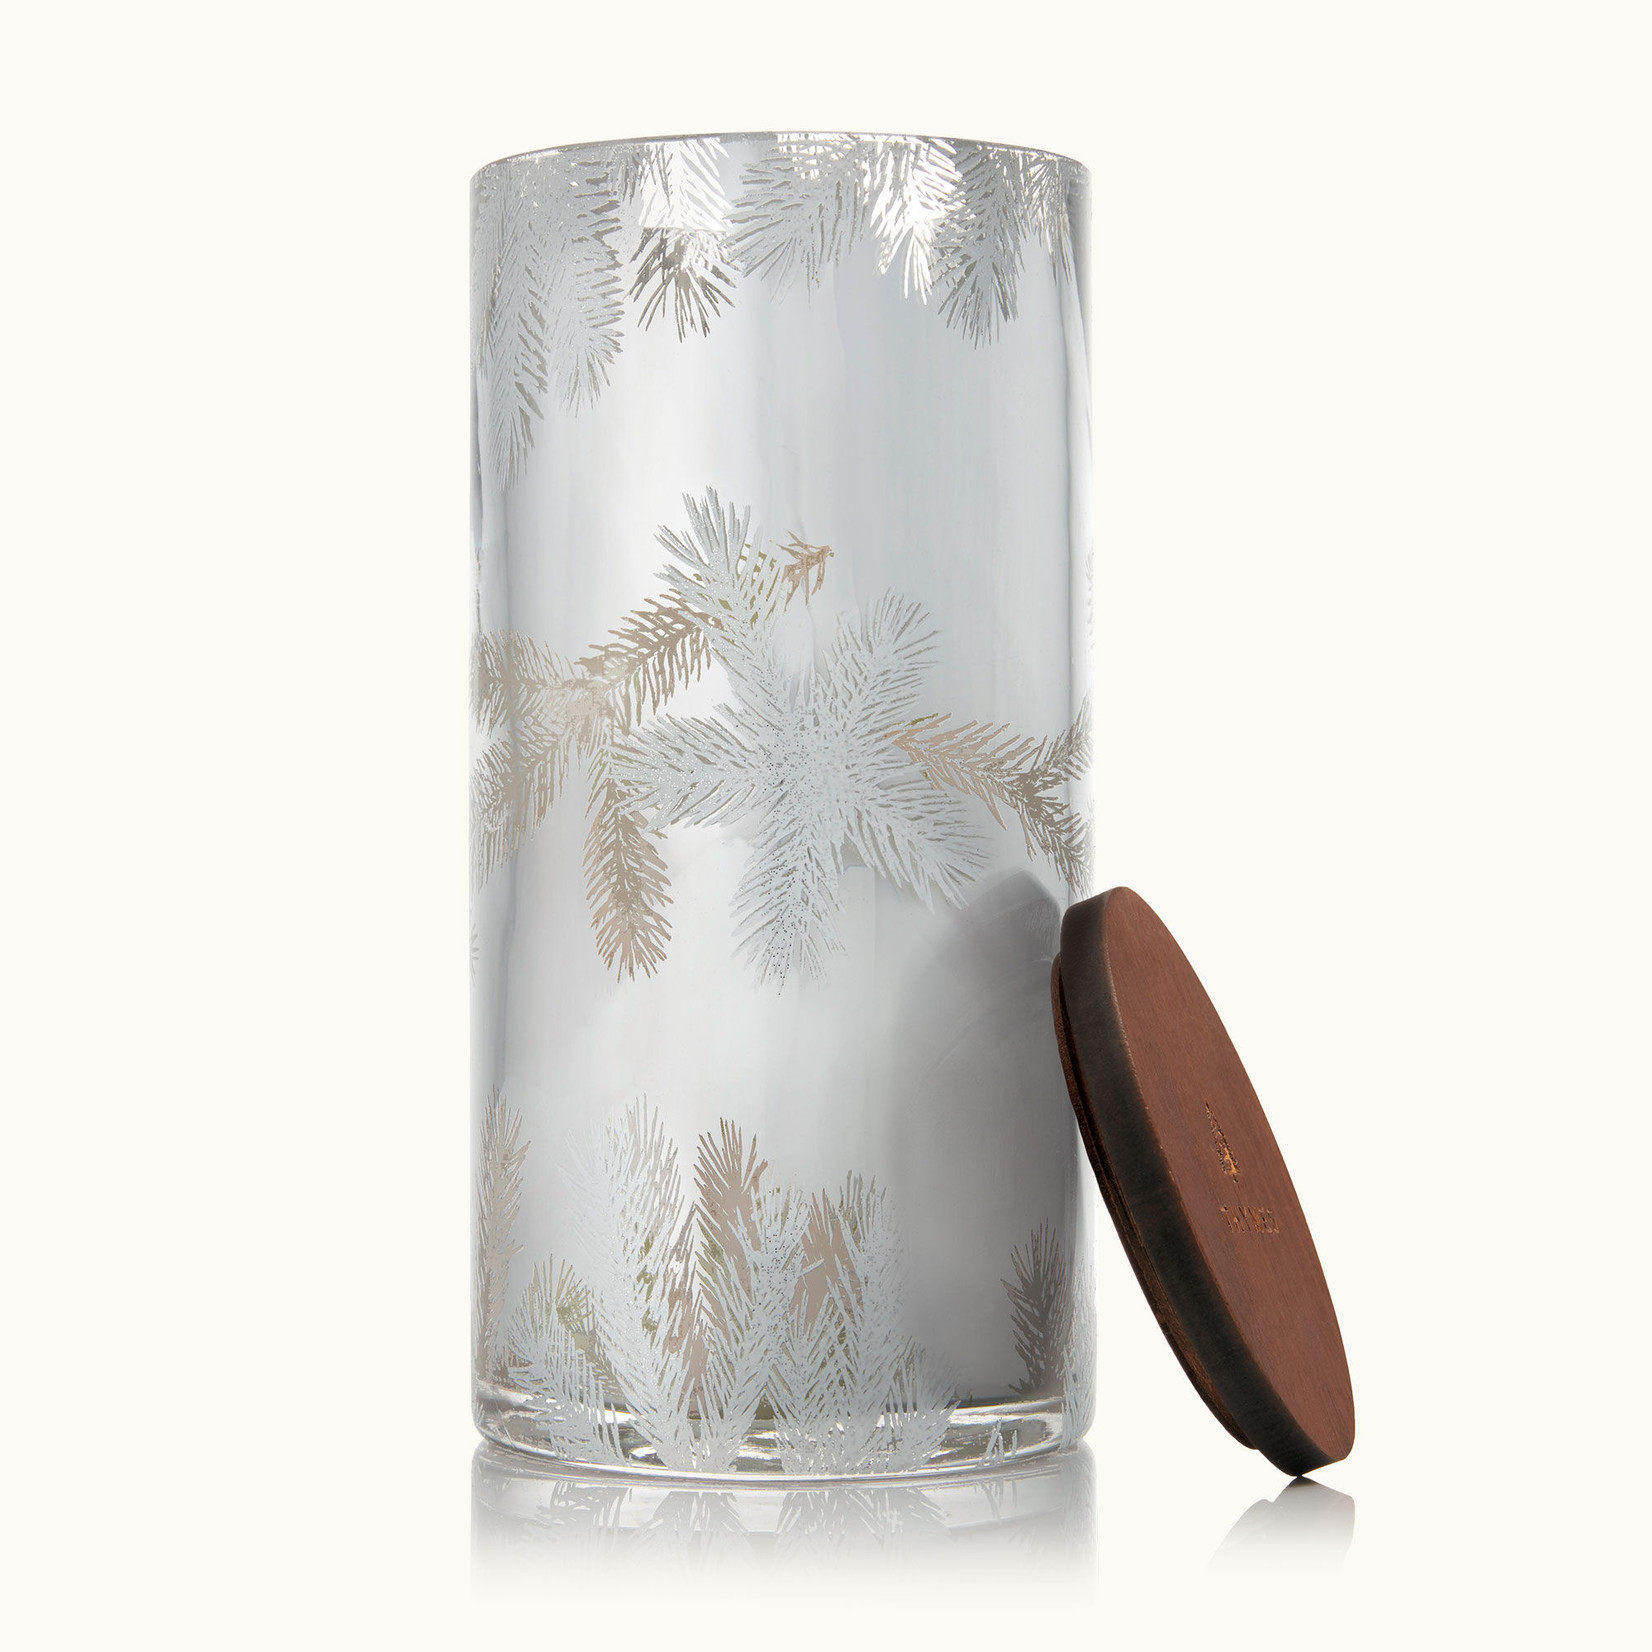 Frasier Fir Collection - Luminary Large Candle